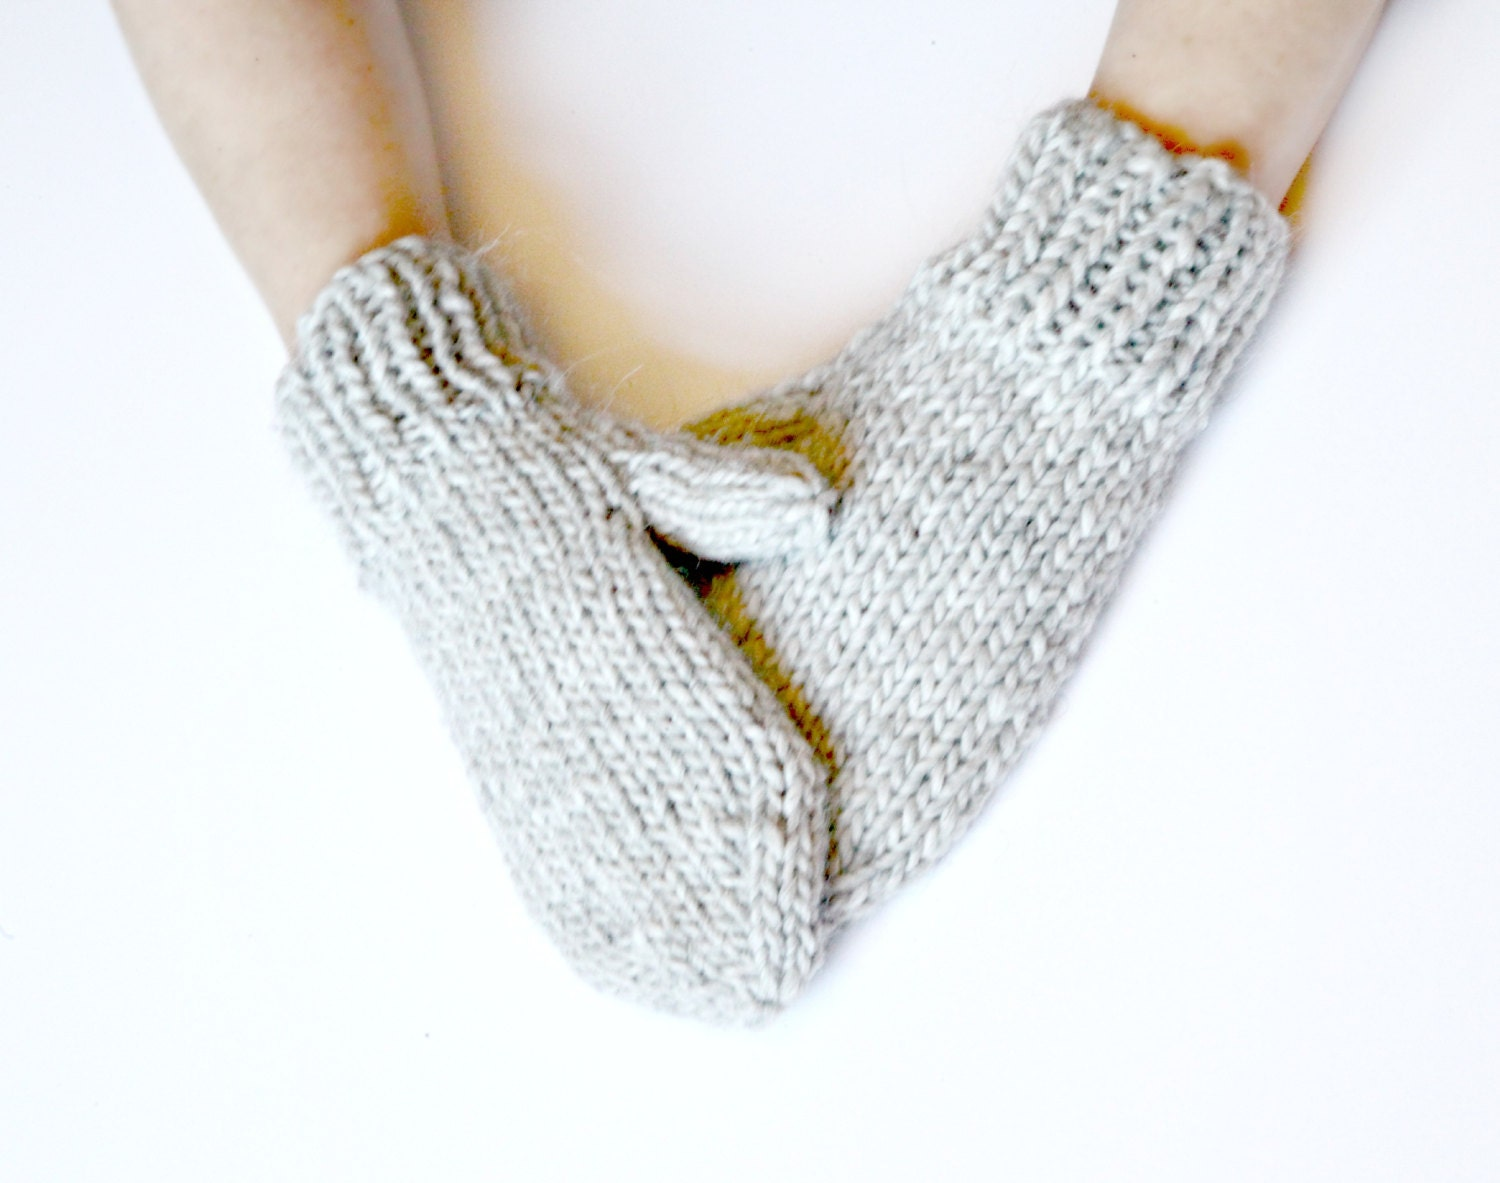 Soft Grey Hand Knitted Mittens - Women's Mittens - Wool Mittens - wildhoneypieboutique